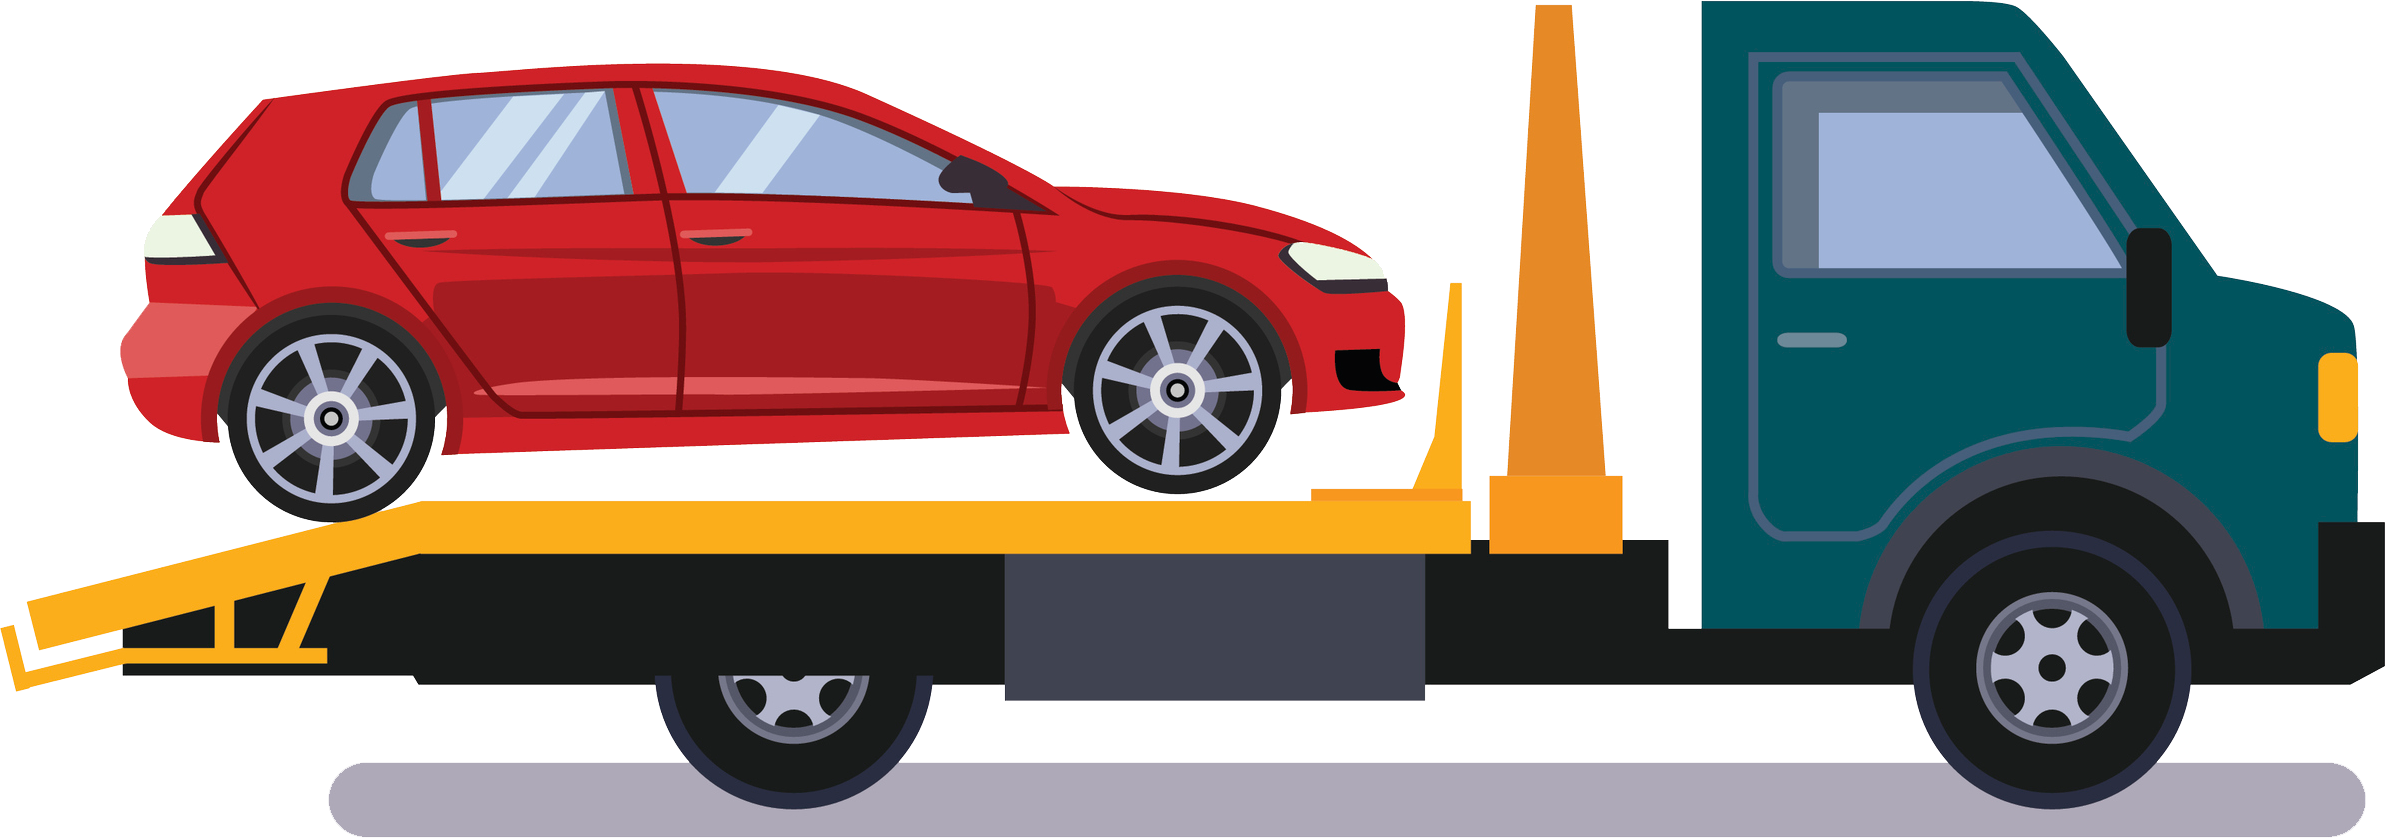 tow truck clipart towing